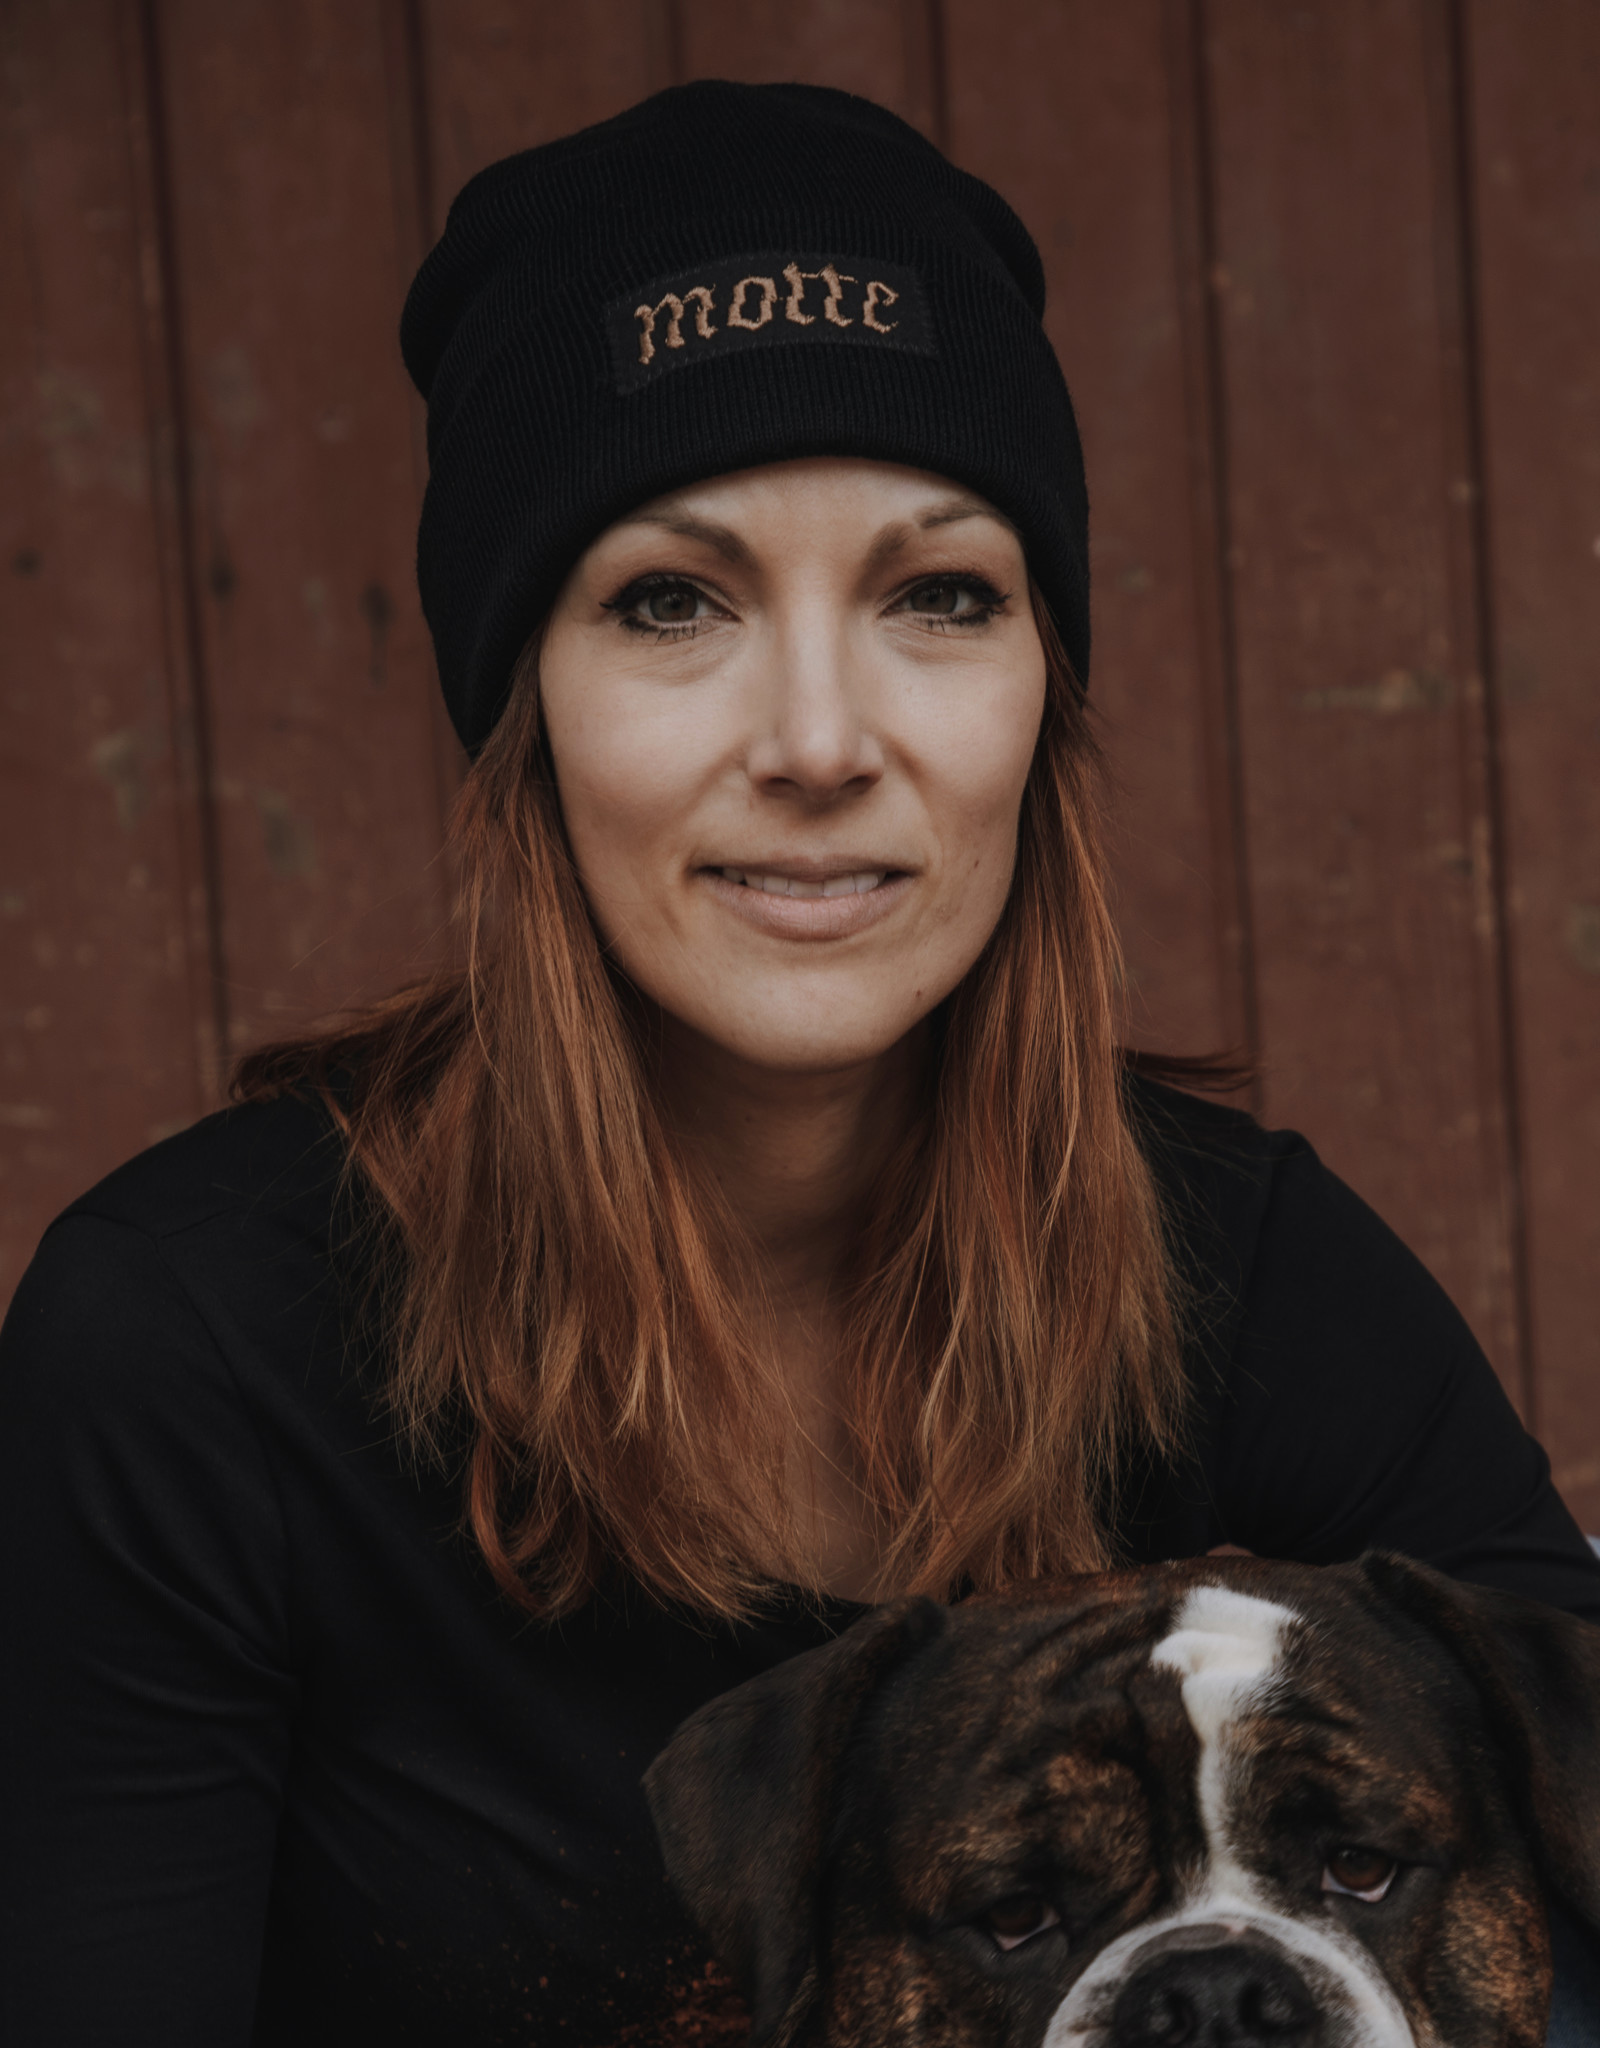 Motte beanie black with embroidered lettering